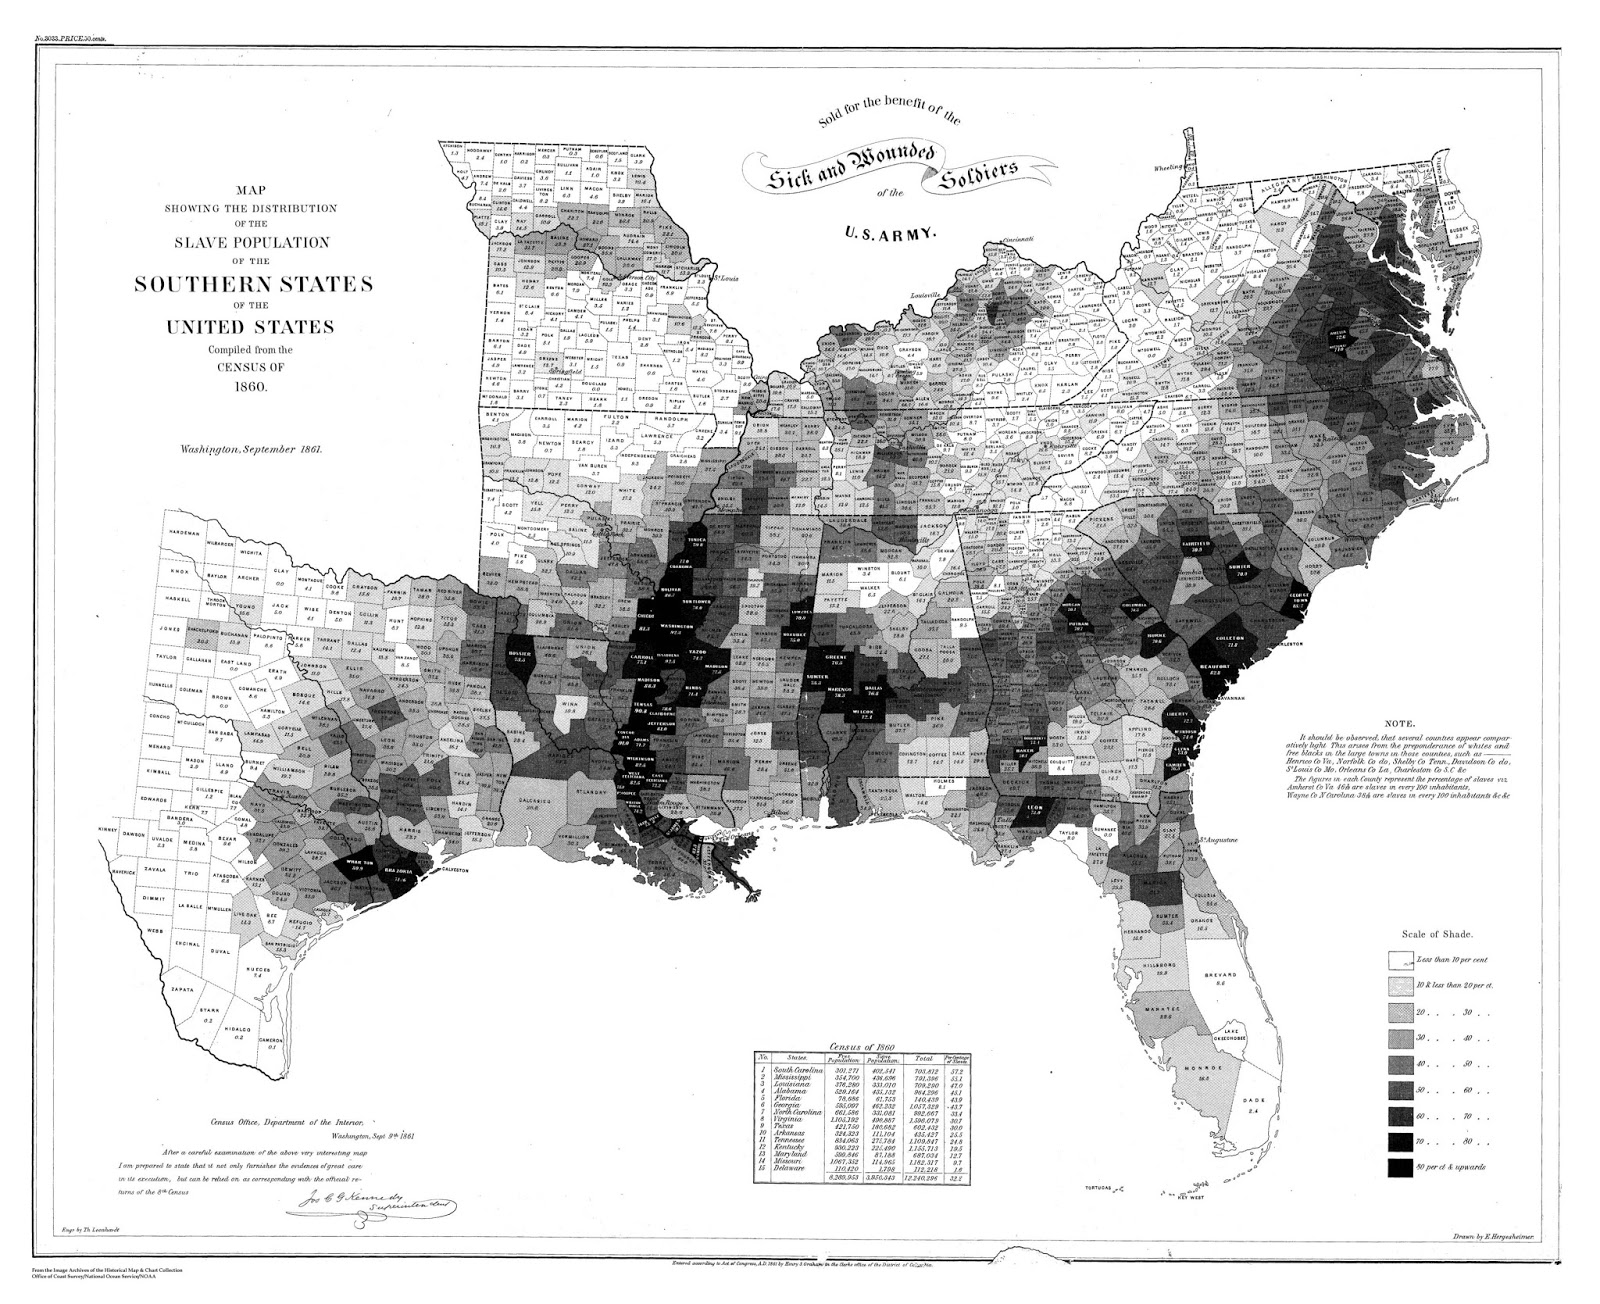 Slave population of the southern states of the U.S.